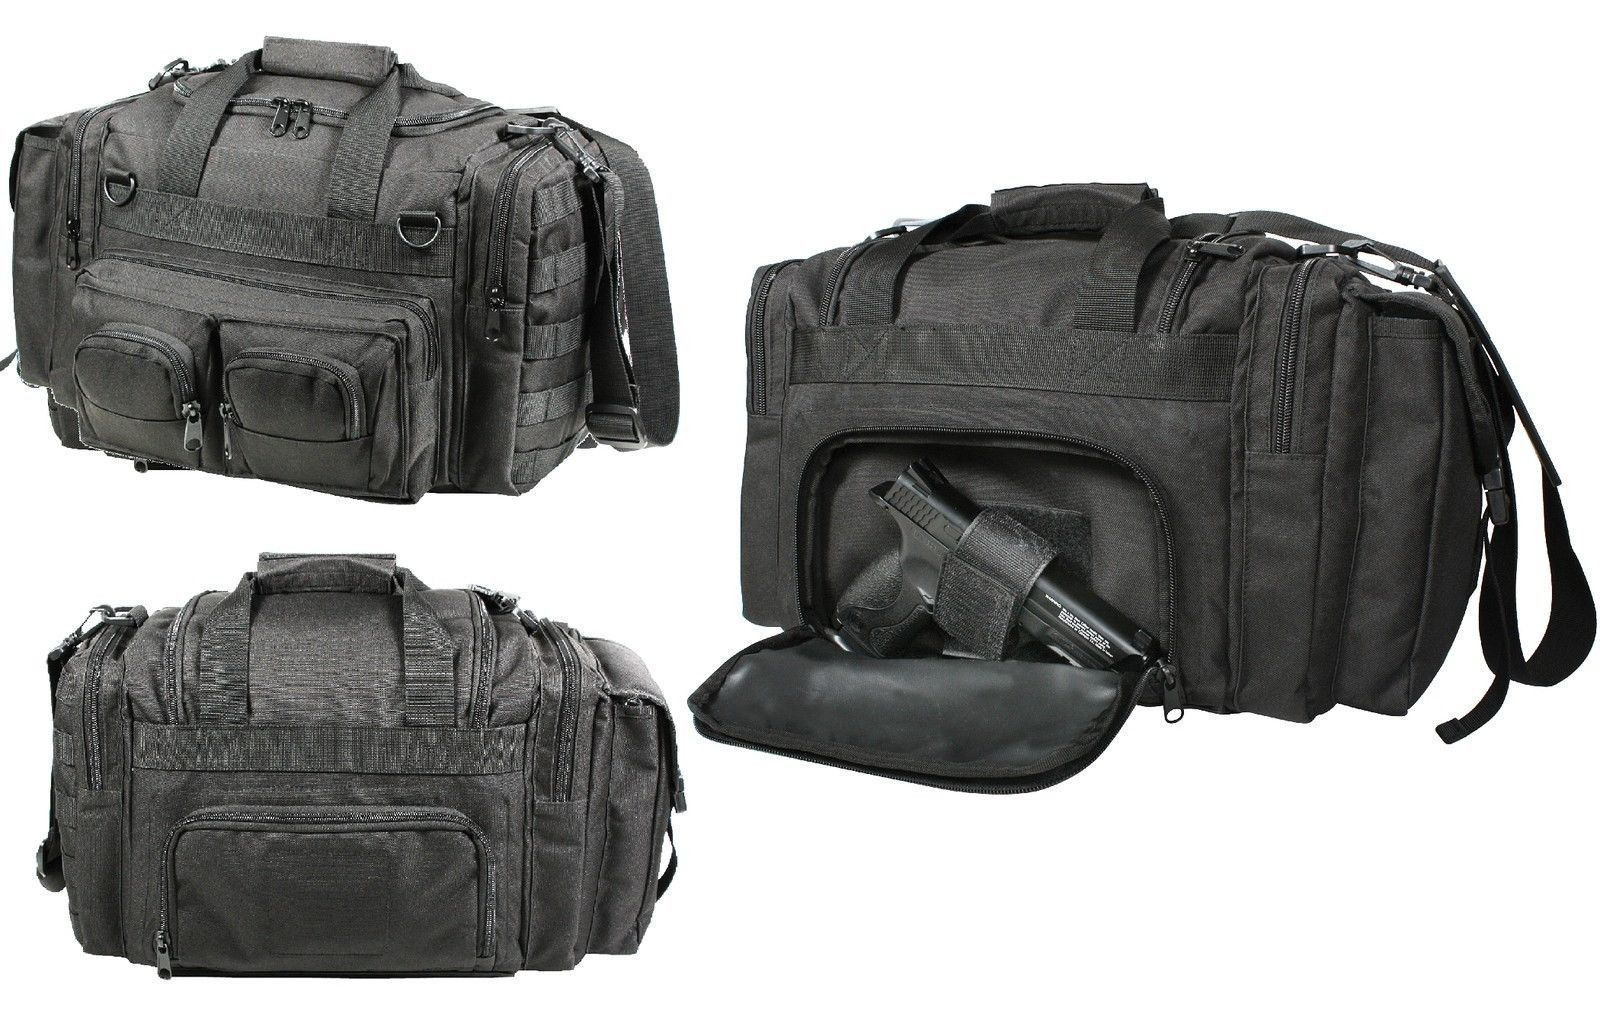 Photo of Black Concealed Carry Bag – Law Enforcement Security Tactical MOLLE Gear Bags